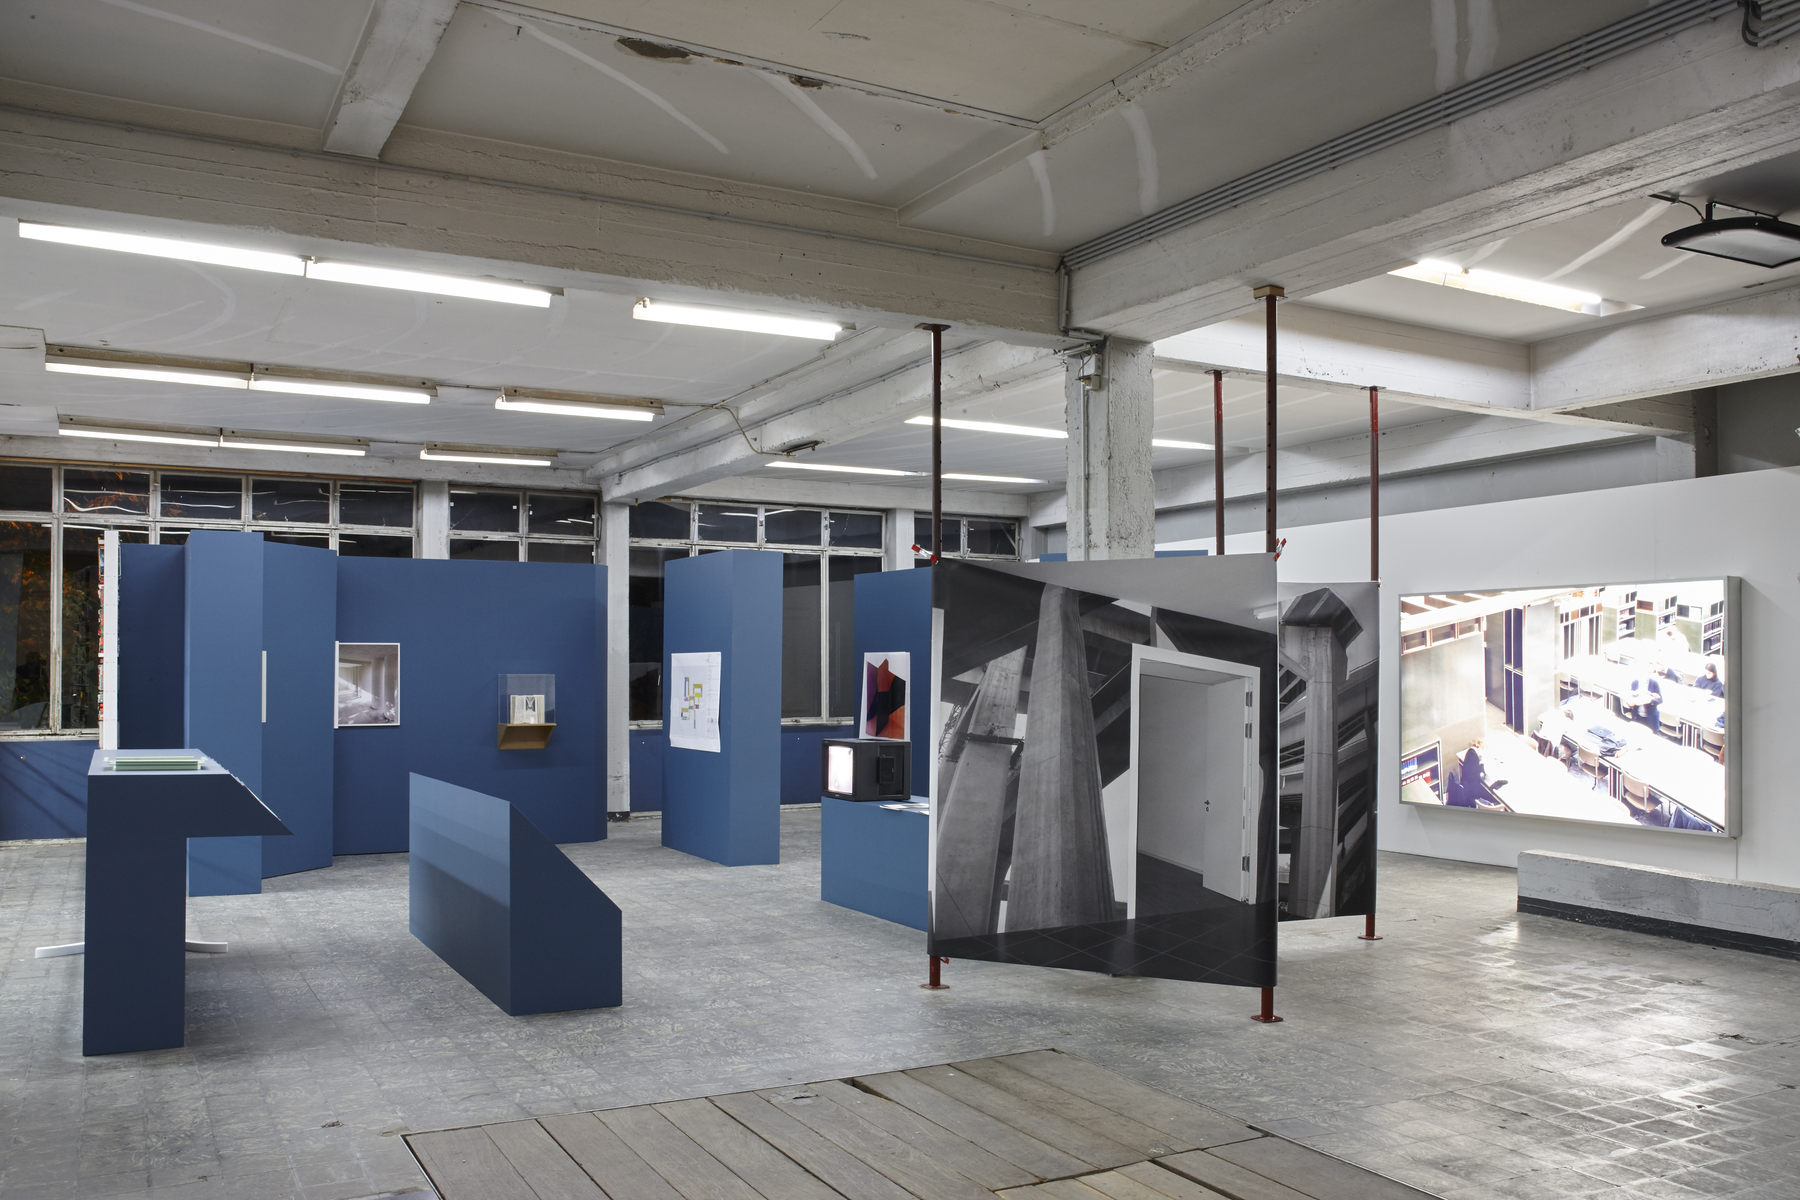 'The Corner Show', installation view, Extra City Kunsthal, 2015 © Jan Kempenaers416